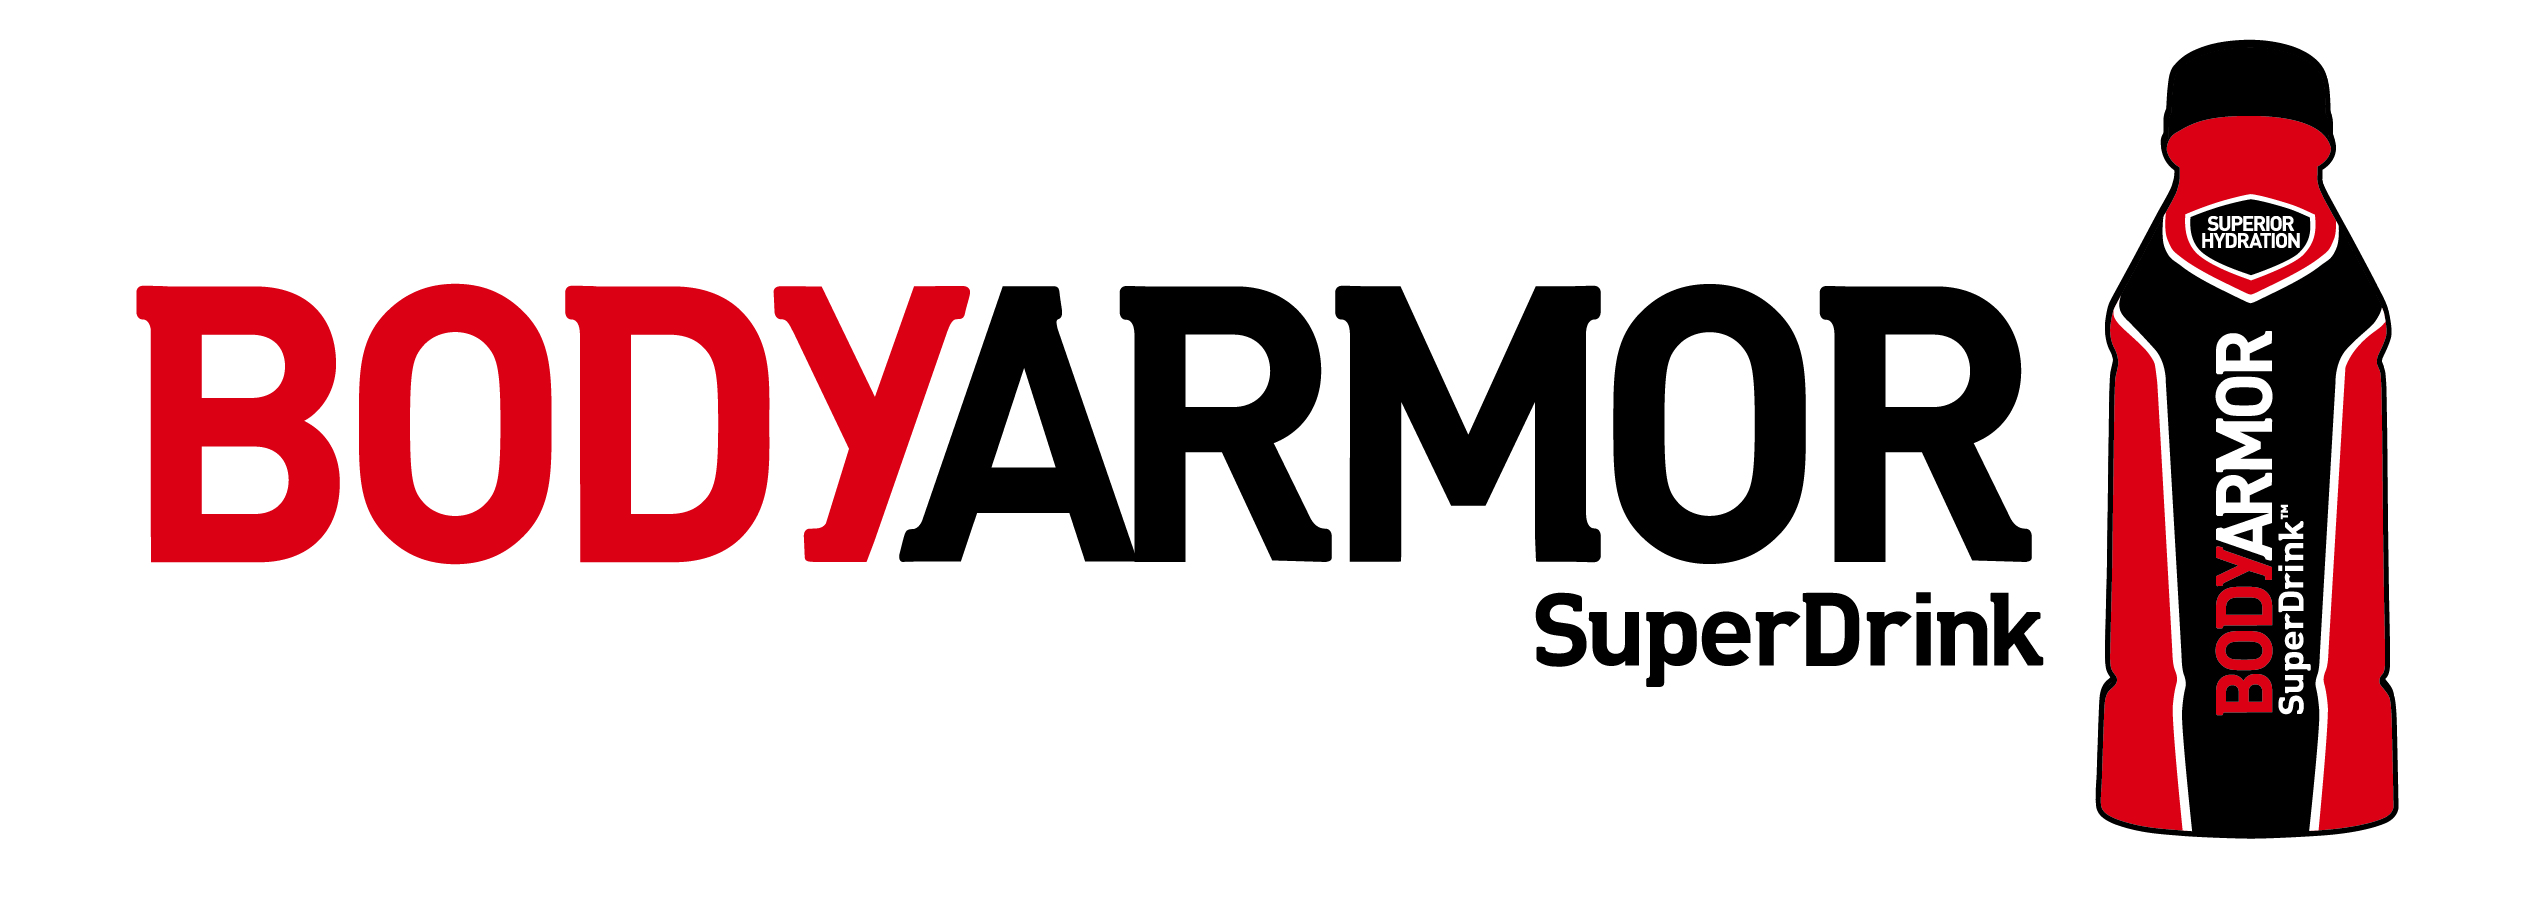 Body Armor logo and bottle